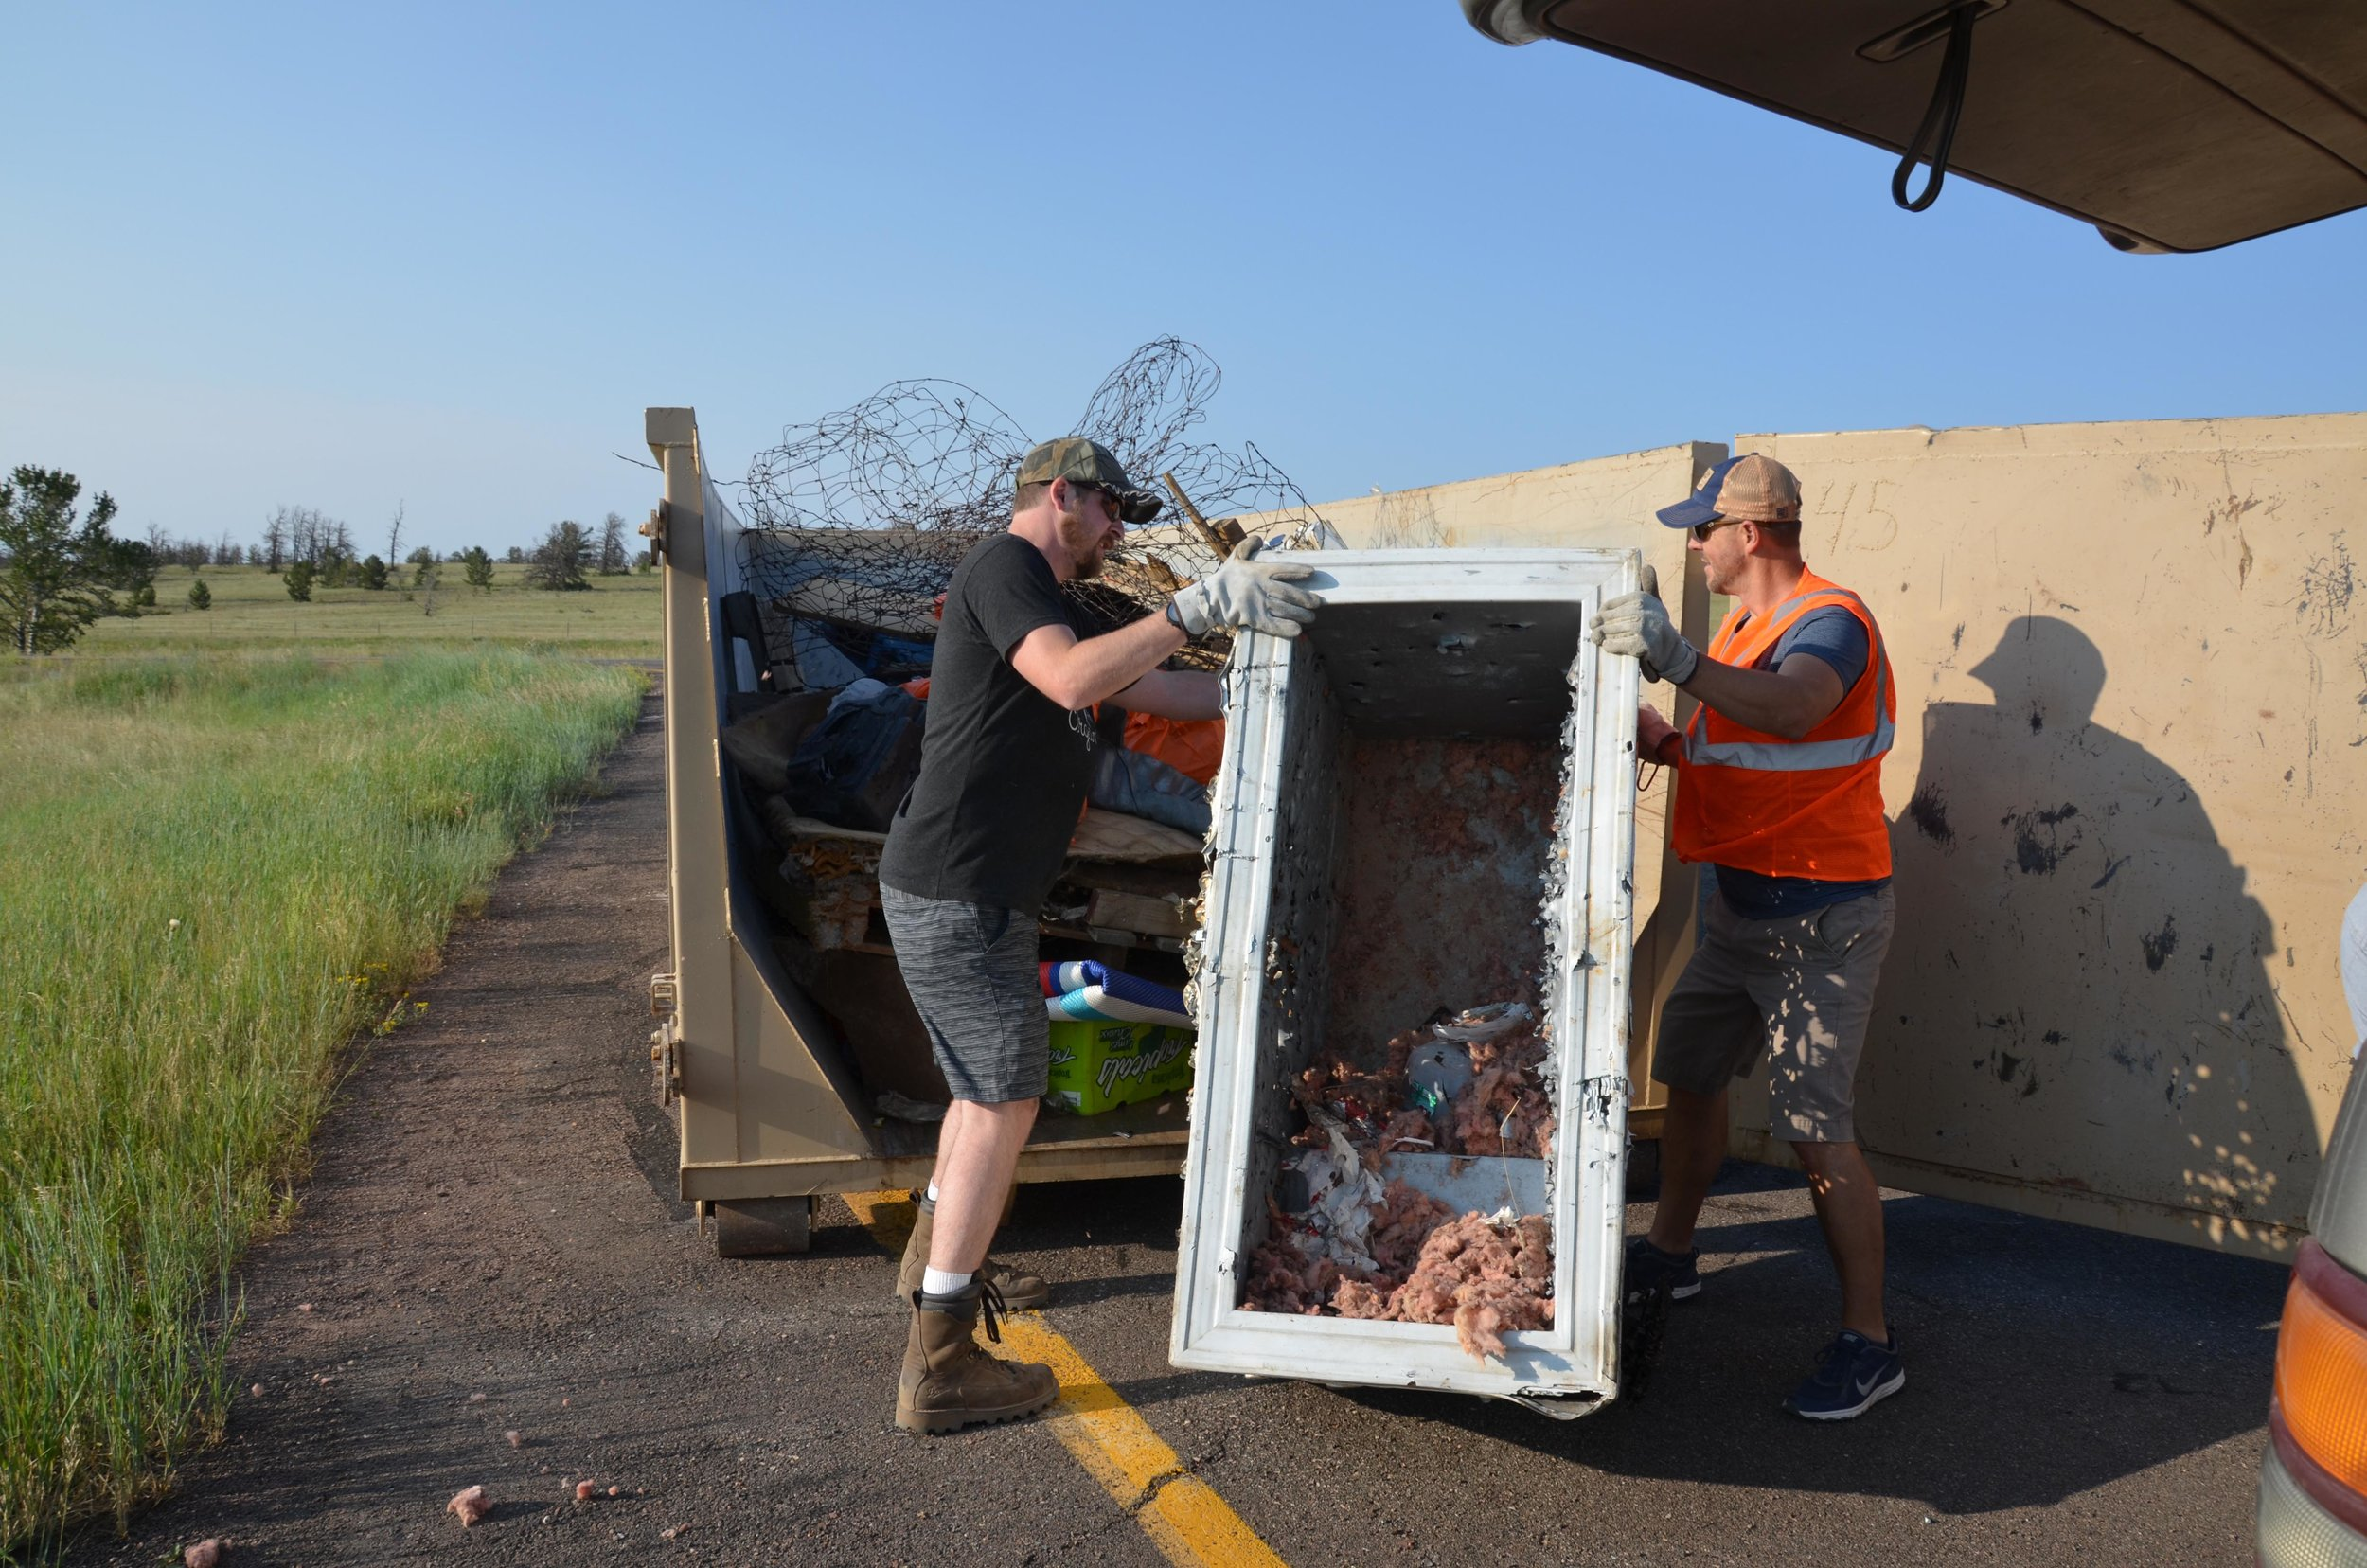 Volunteers move a discarded refrigerator into a dumpster during the 2018 Pole Mountain Cleanup. (Photo by Willow Belden)